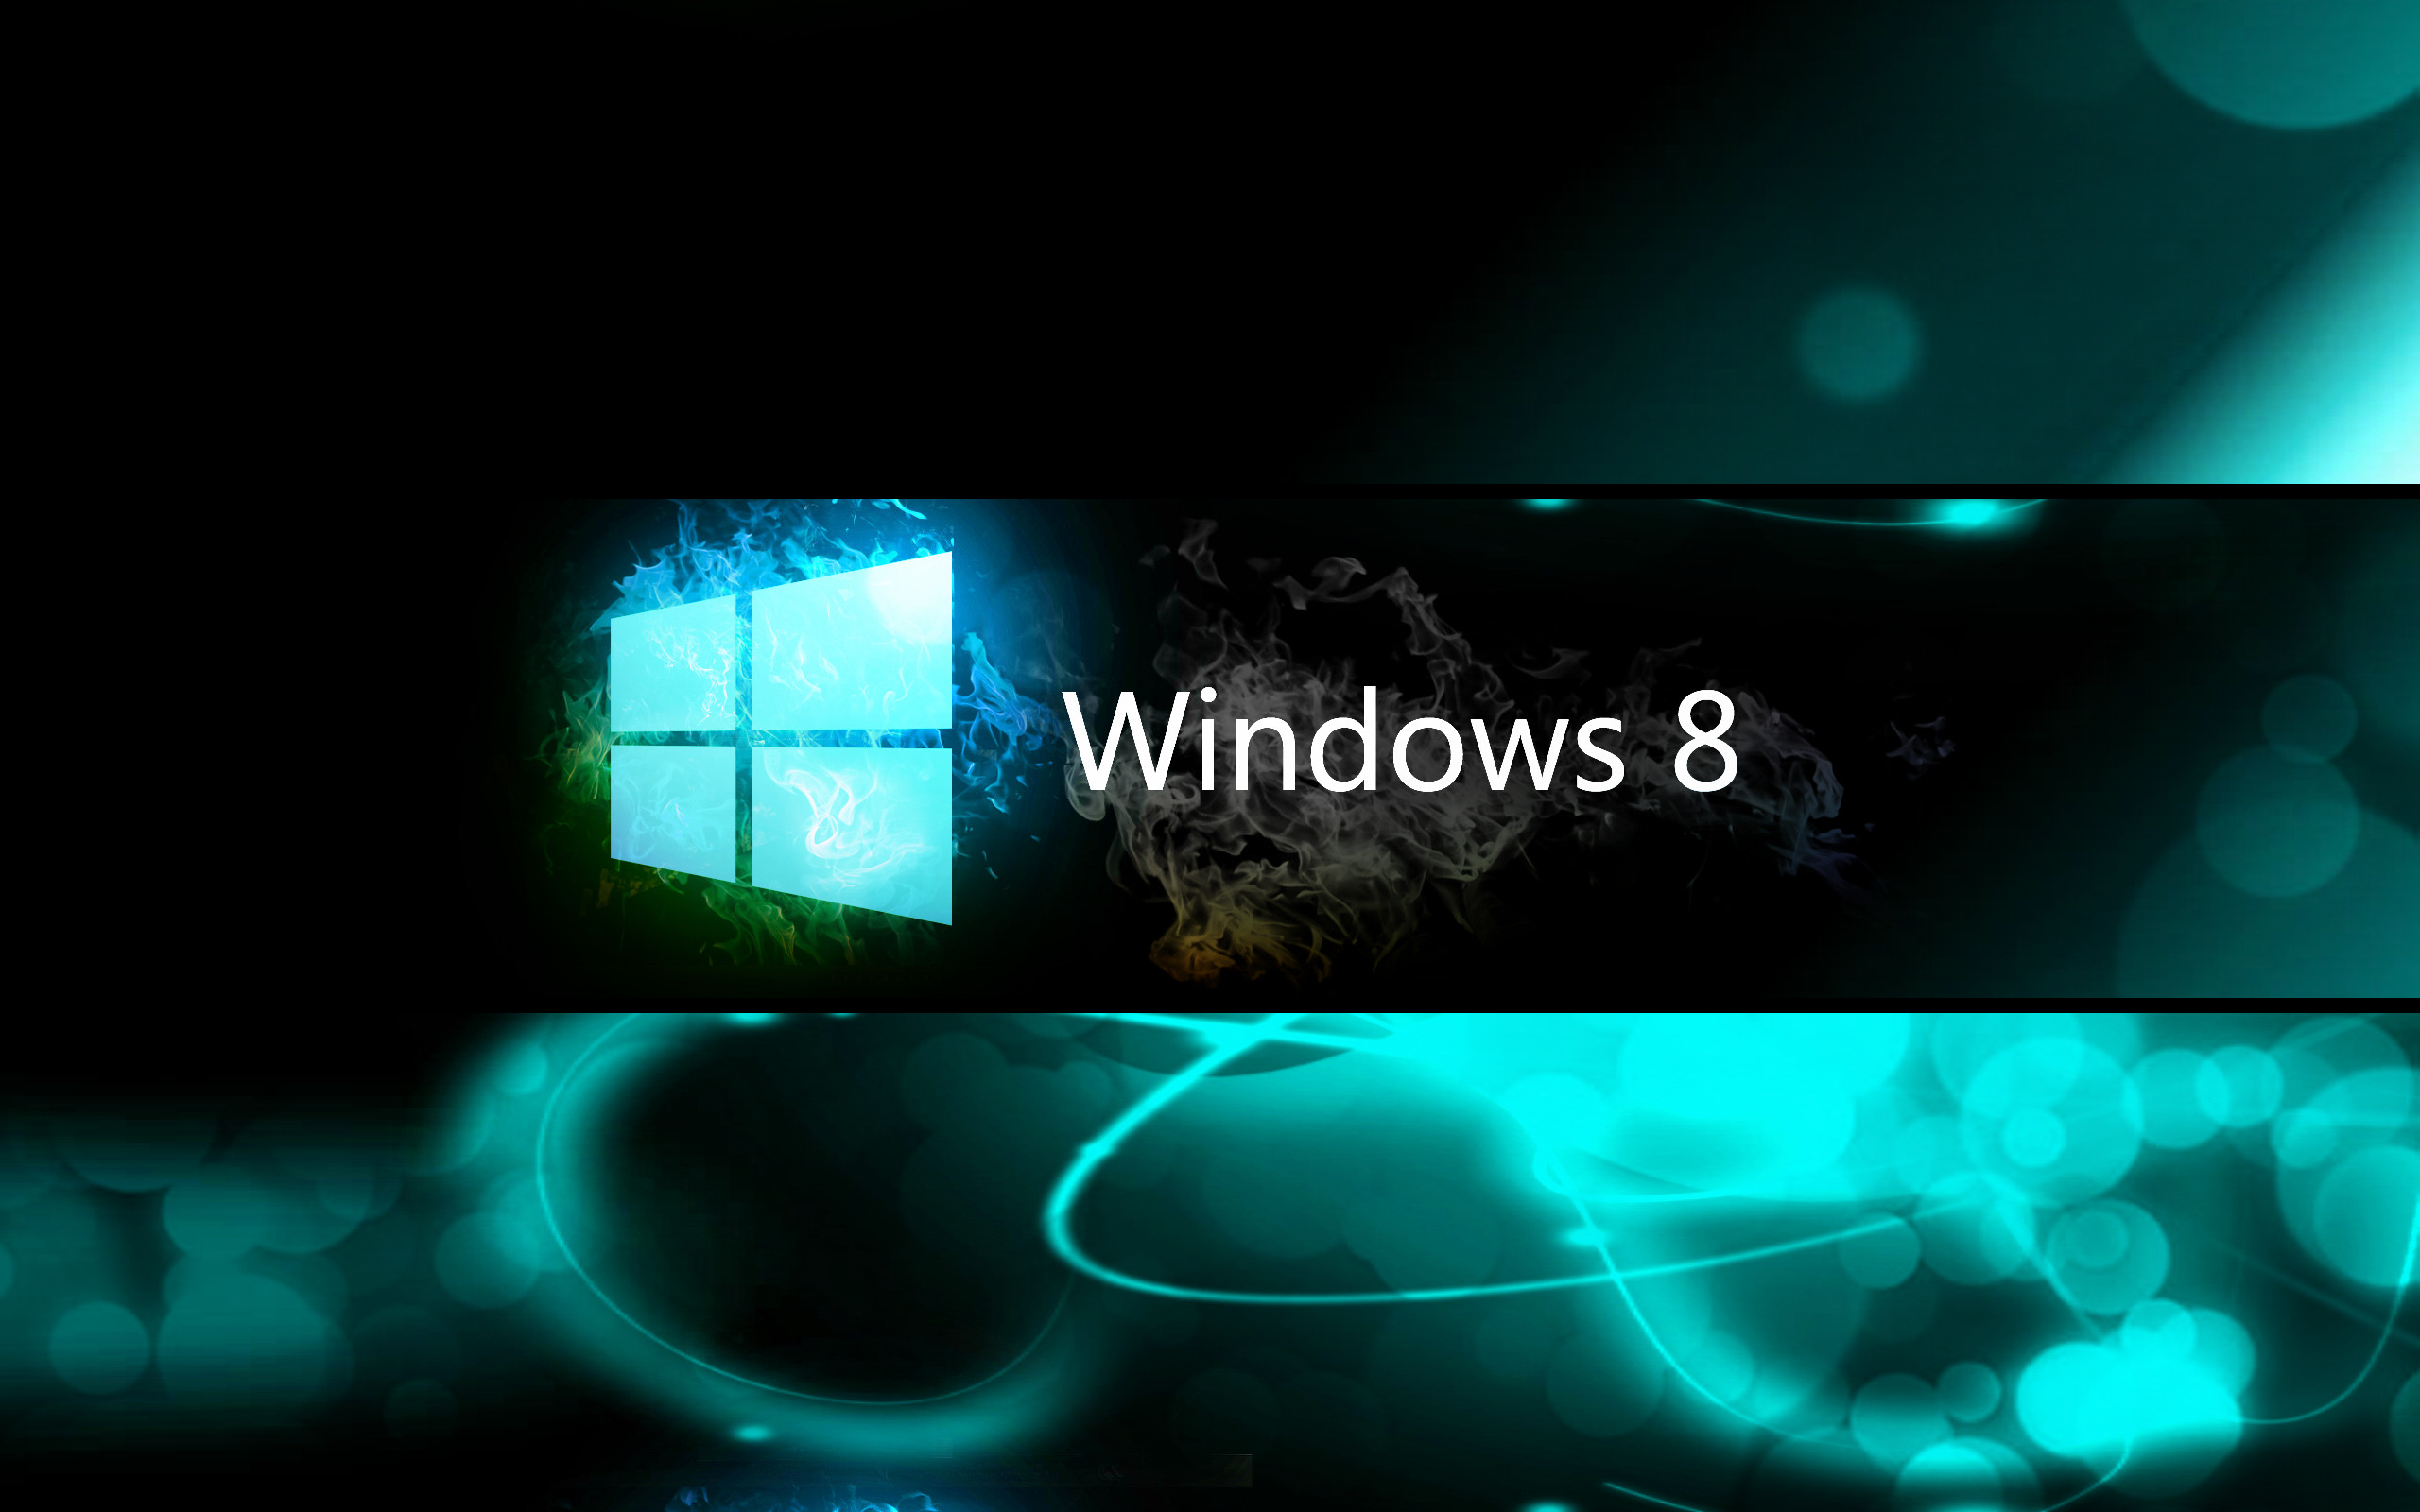 windows 8 black wallpaper (56+ images)